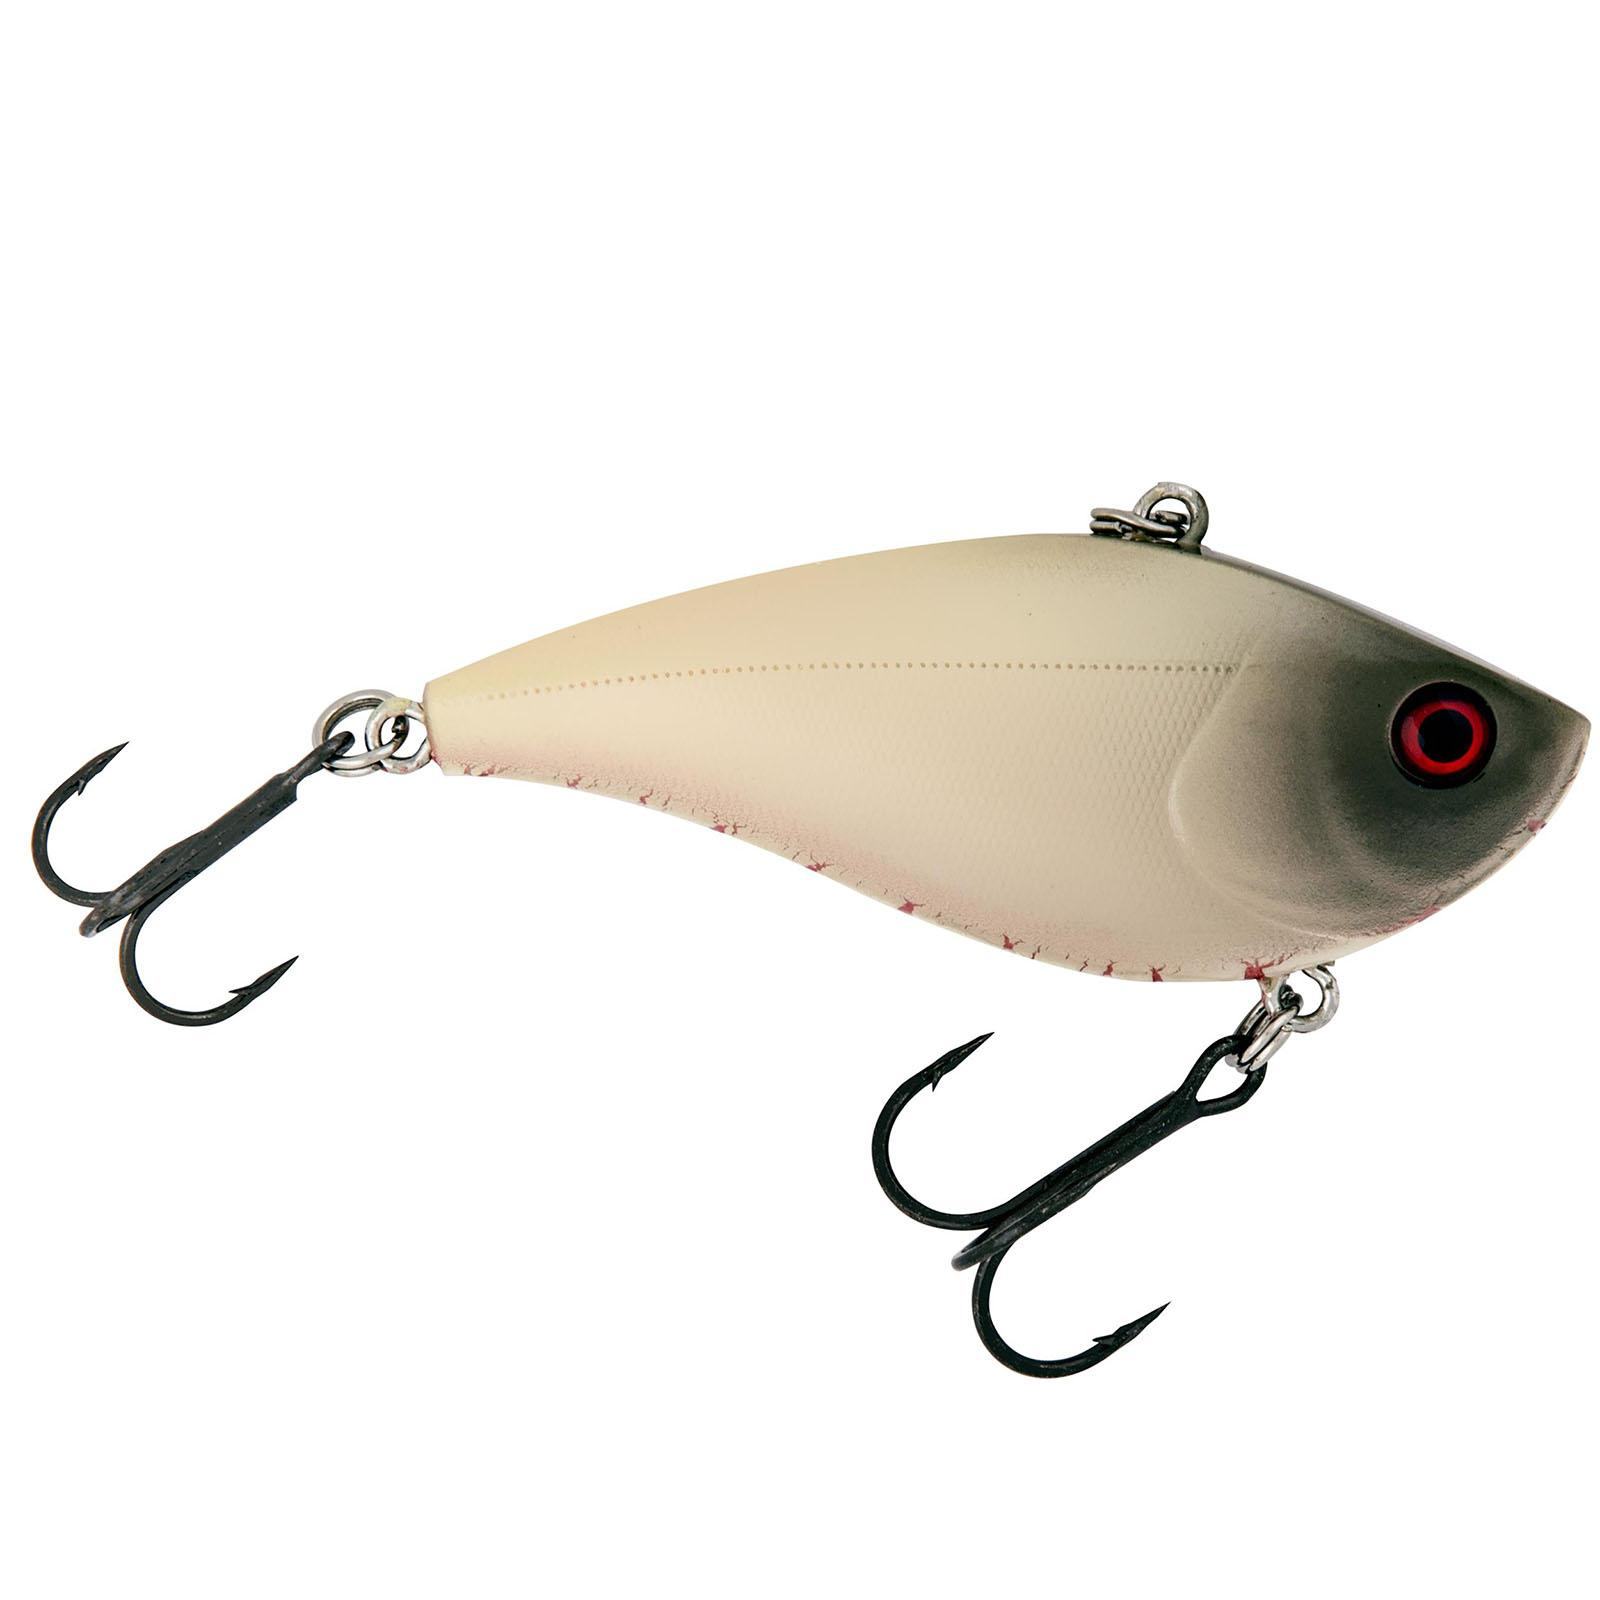 Booyah Baits Hard Knocker Lipless Crankbait Color Crushed Bone Weight 1/4 oz